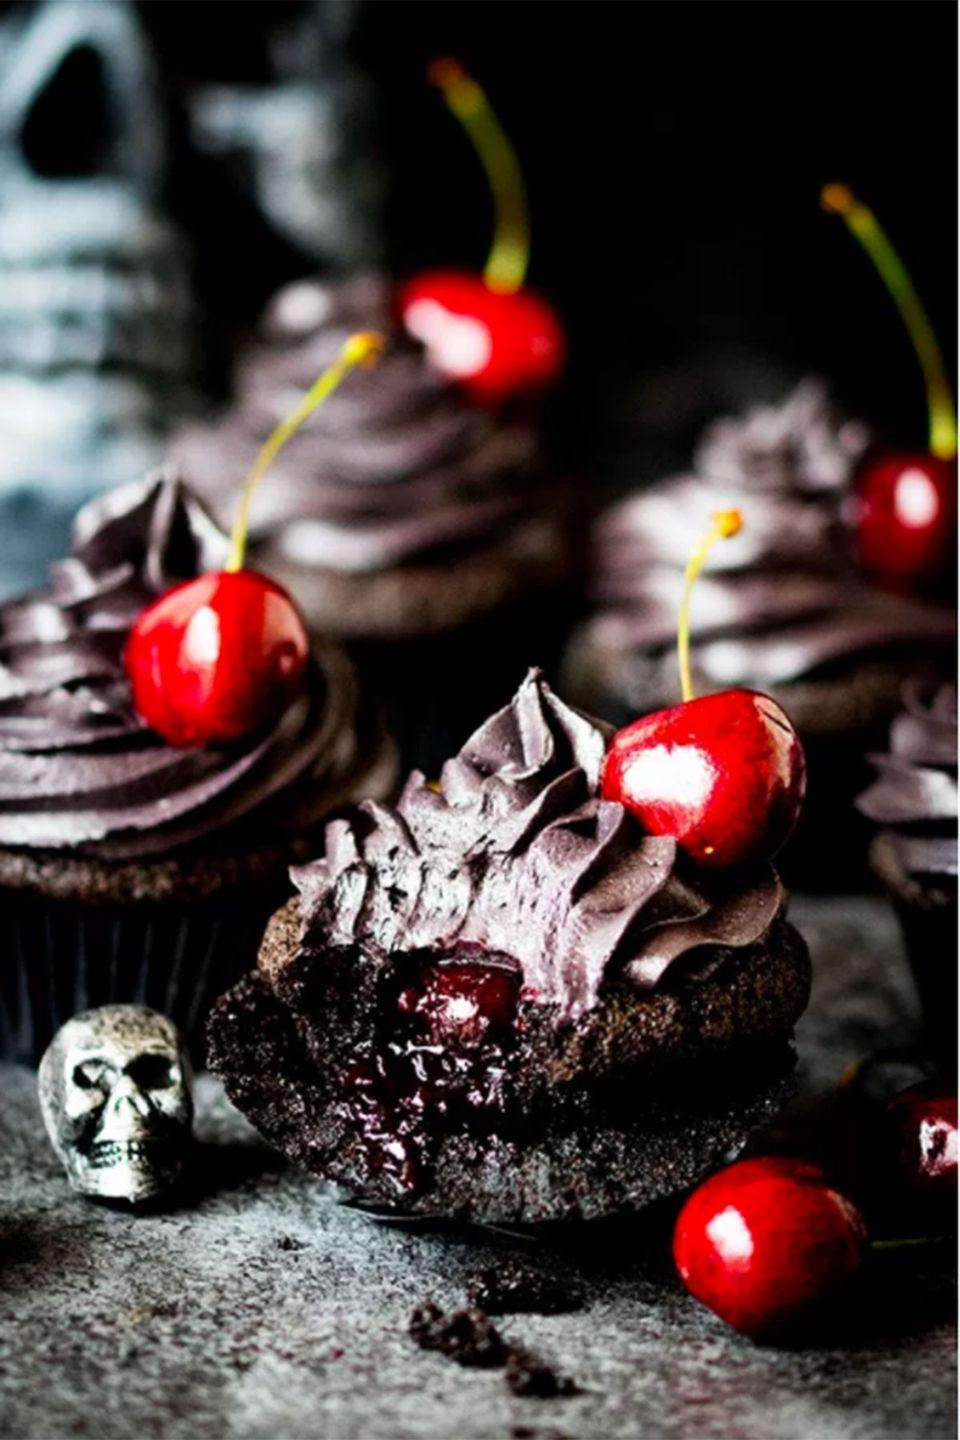 """<p>Why have death by chocolate when you can have death by cherry-filled chocolate?</p><p><strong>Get the recipe at <a href=""""http://www.kitchensanctuary.com/2016/09/halloween-black-cupcakes-cherry-filling/"""" rel=""""nofollow noopener"""" target=""""_blank"""" data-ylk=""""slk:Kitchen Sanctuary"""" class=""""link rapid-noclick-resp"""">Kitchen Sanctuary</a>. </strong></p>"""